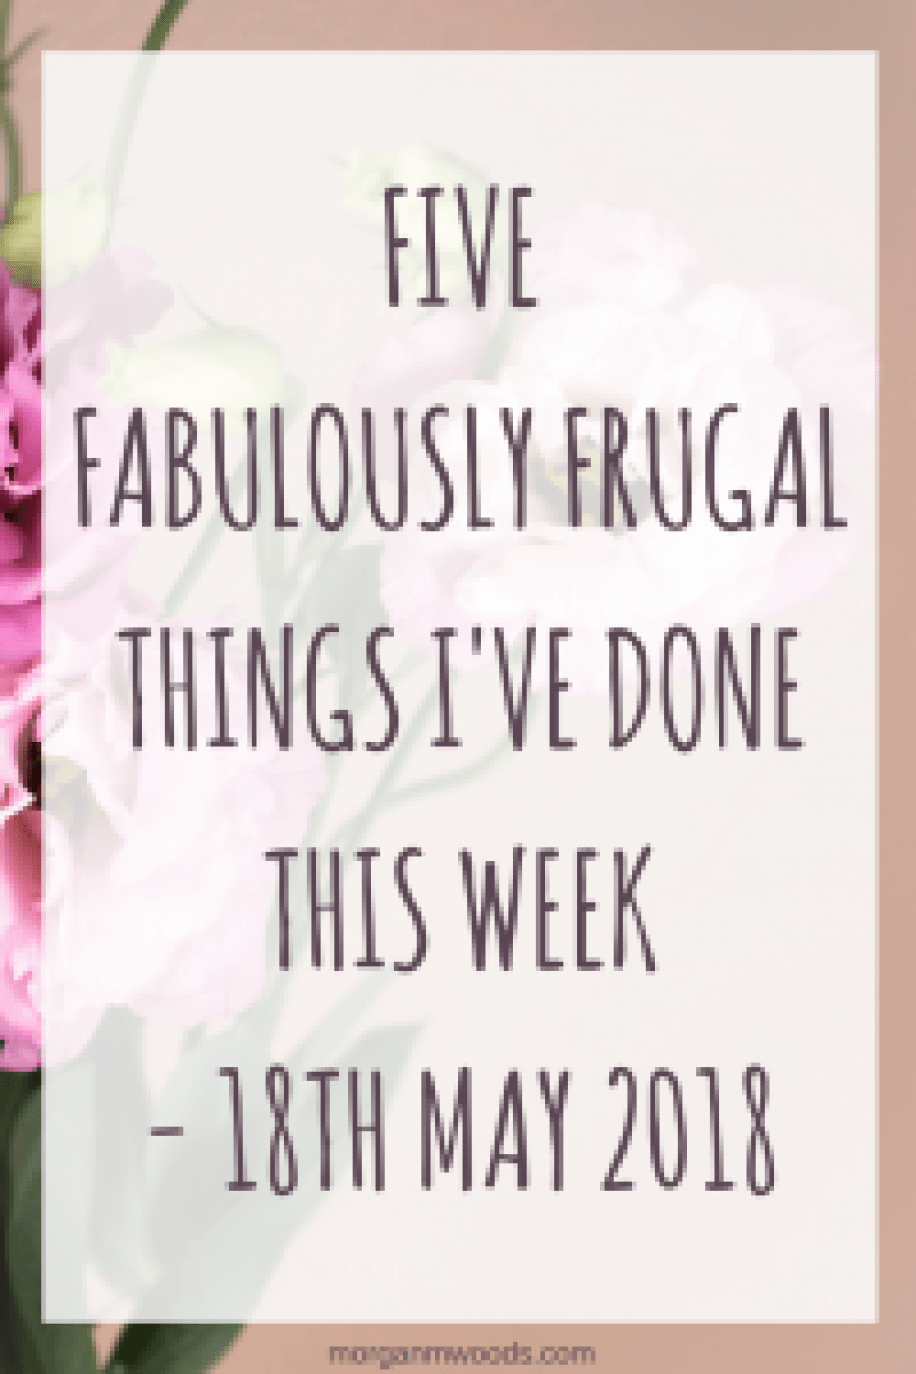 Five fabulously frugal things I've done this week - 18th May 2018